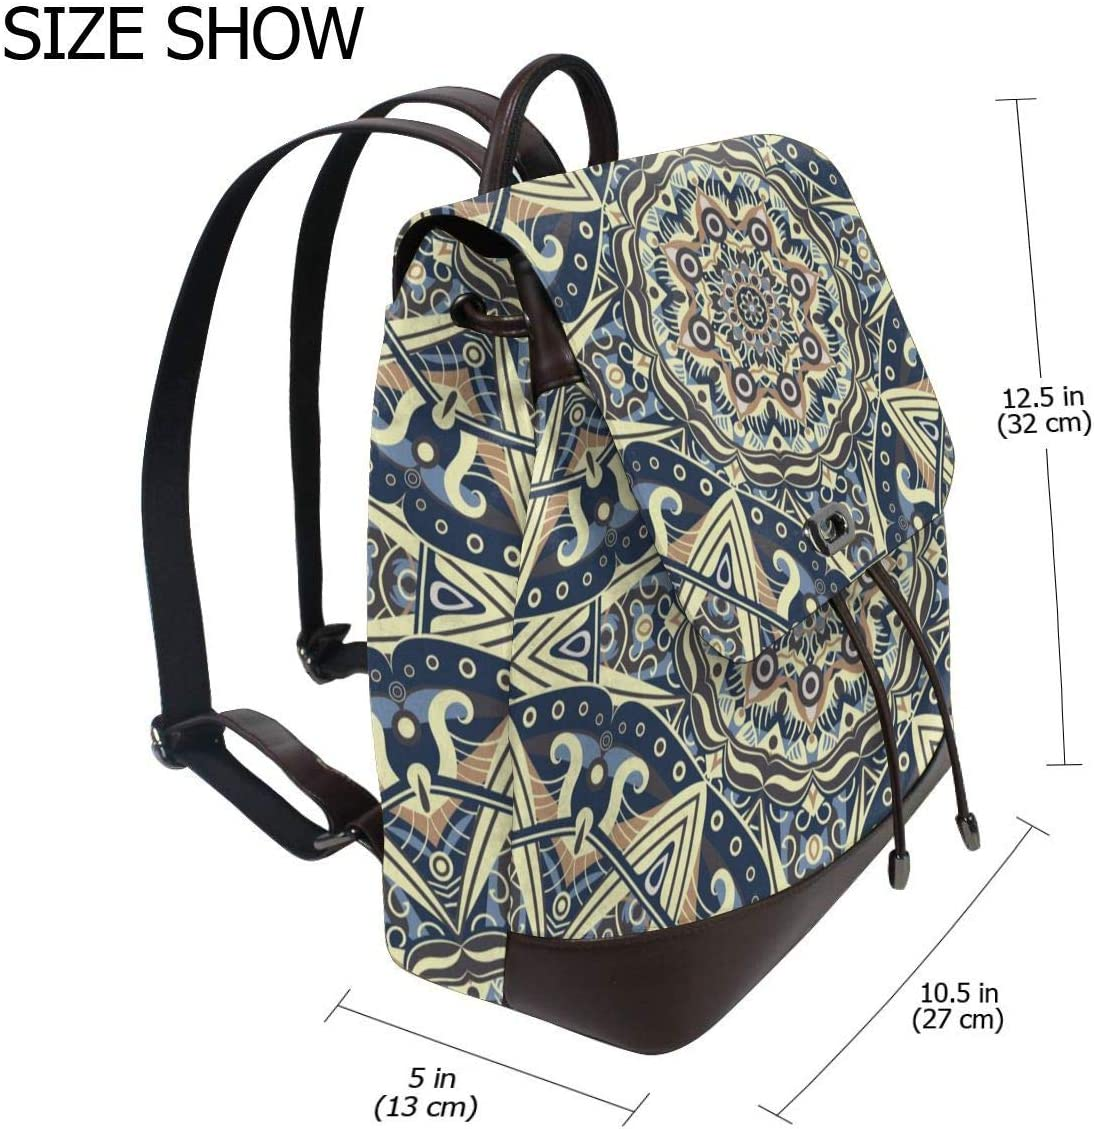 Outdoor Bag And Schoolbag Oximing Islamic Ornament Vector Persian Motiff Round Pattern Elements Womens Leather Shoulder Bag